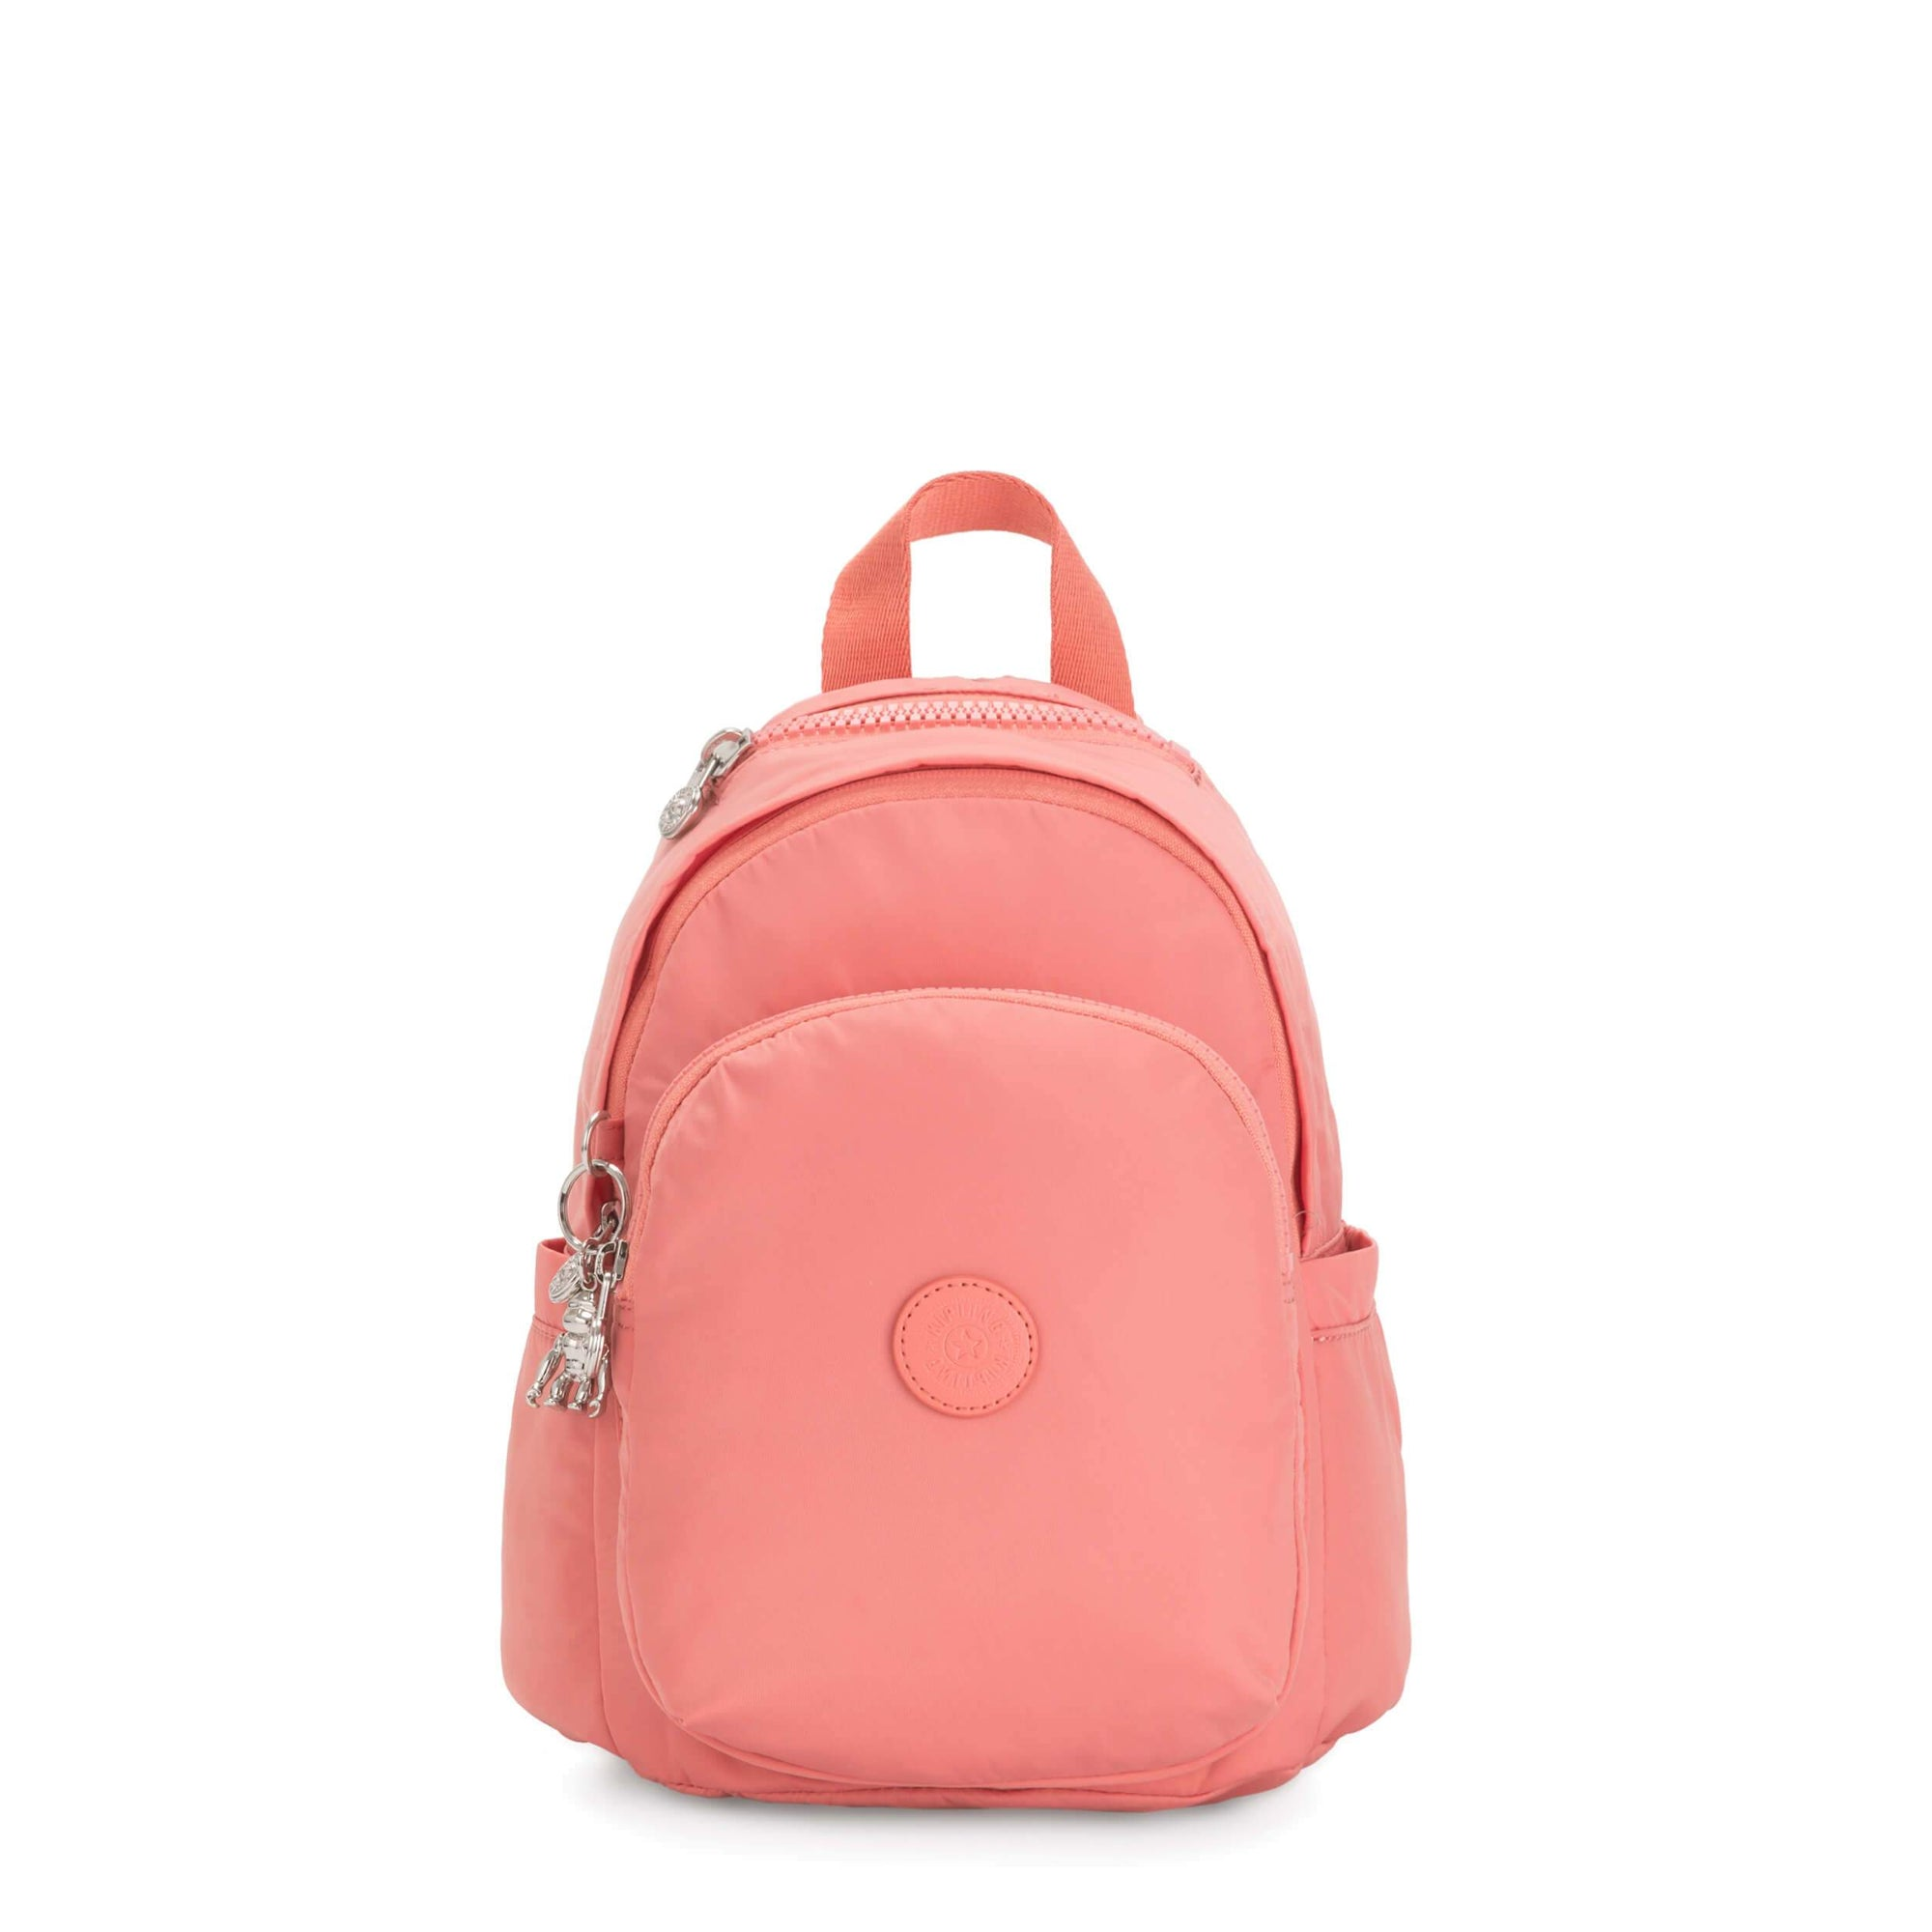 Backpack Kipling Delia Mini Coral Pink KI458656L